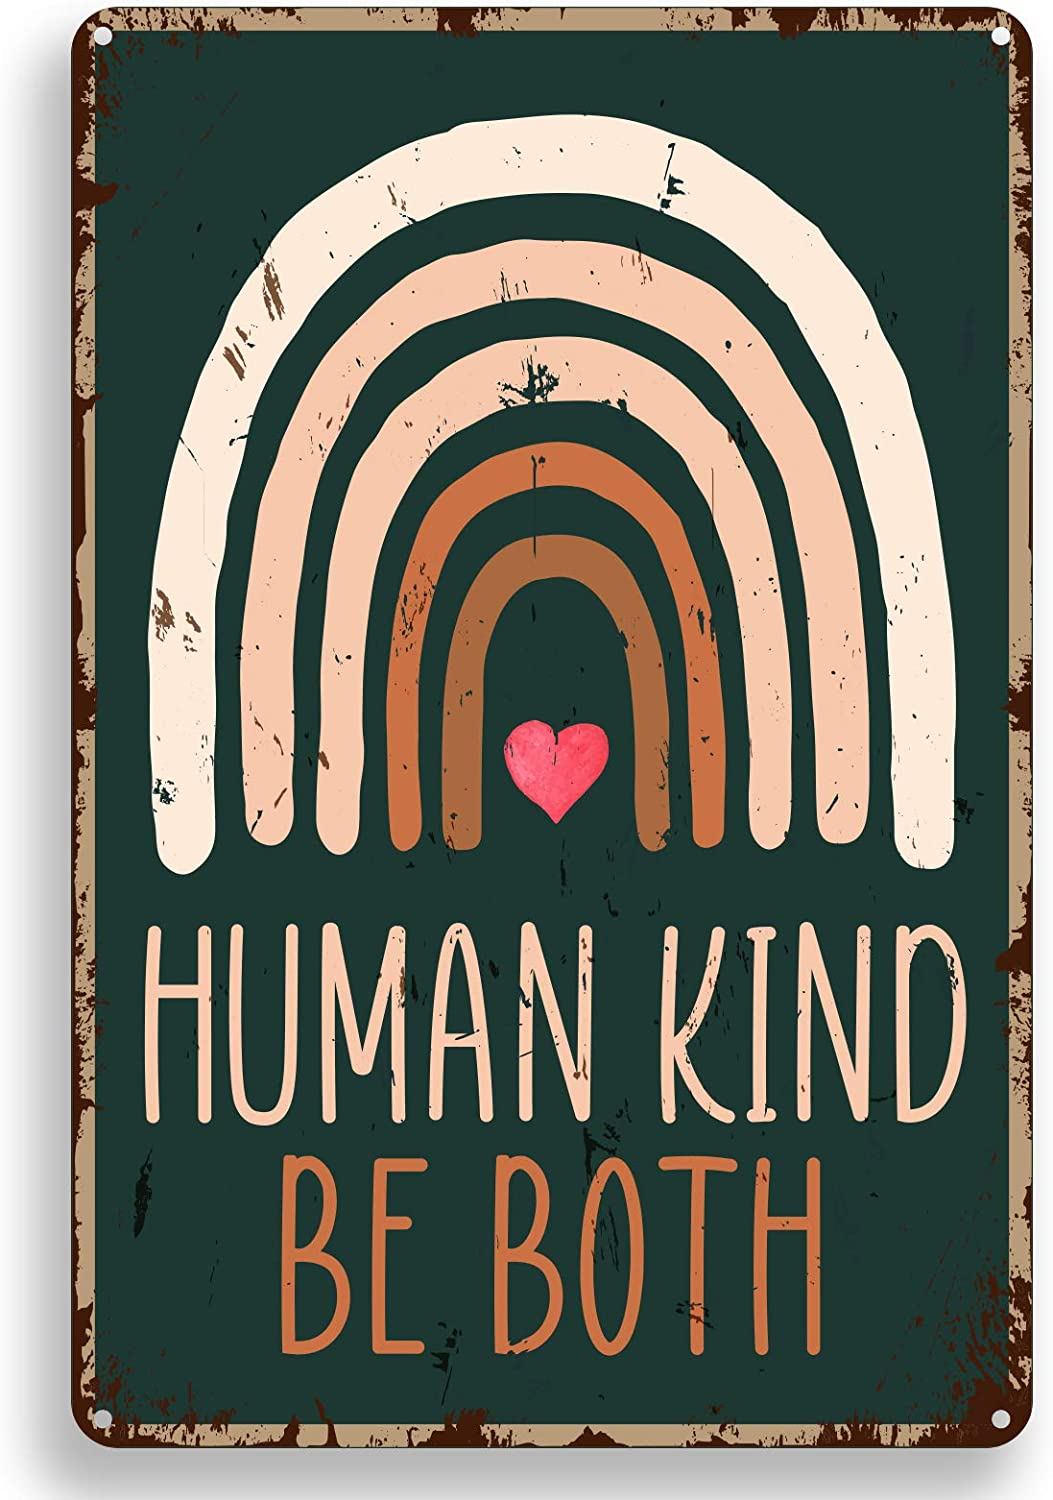 ForbiddenPaper Inspirational Quote Metal Tin Sign Wall Decor Human Kind Be Both Motivational Quote Vintage Rainbow Tin Sign for Office/Home/Classroom Decor Gifts Thanksgiving 8x12 Inch